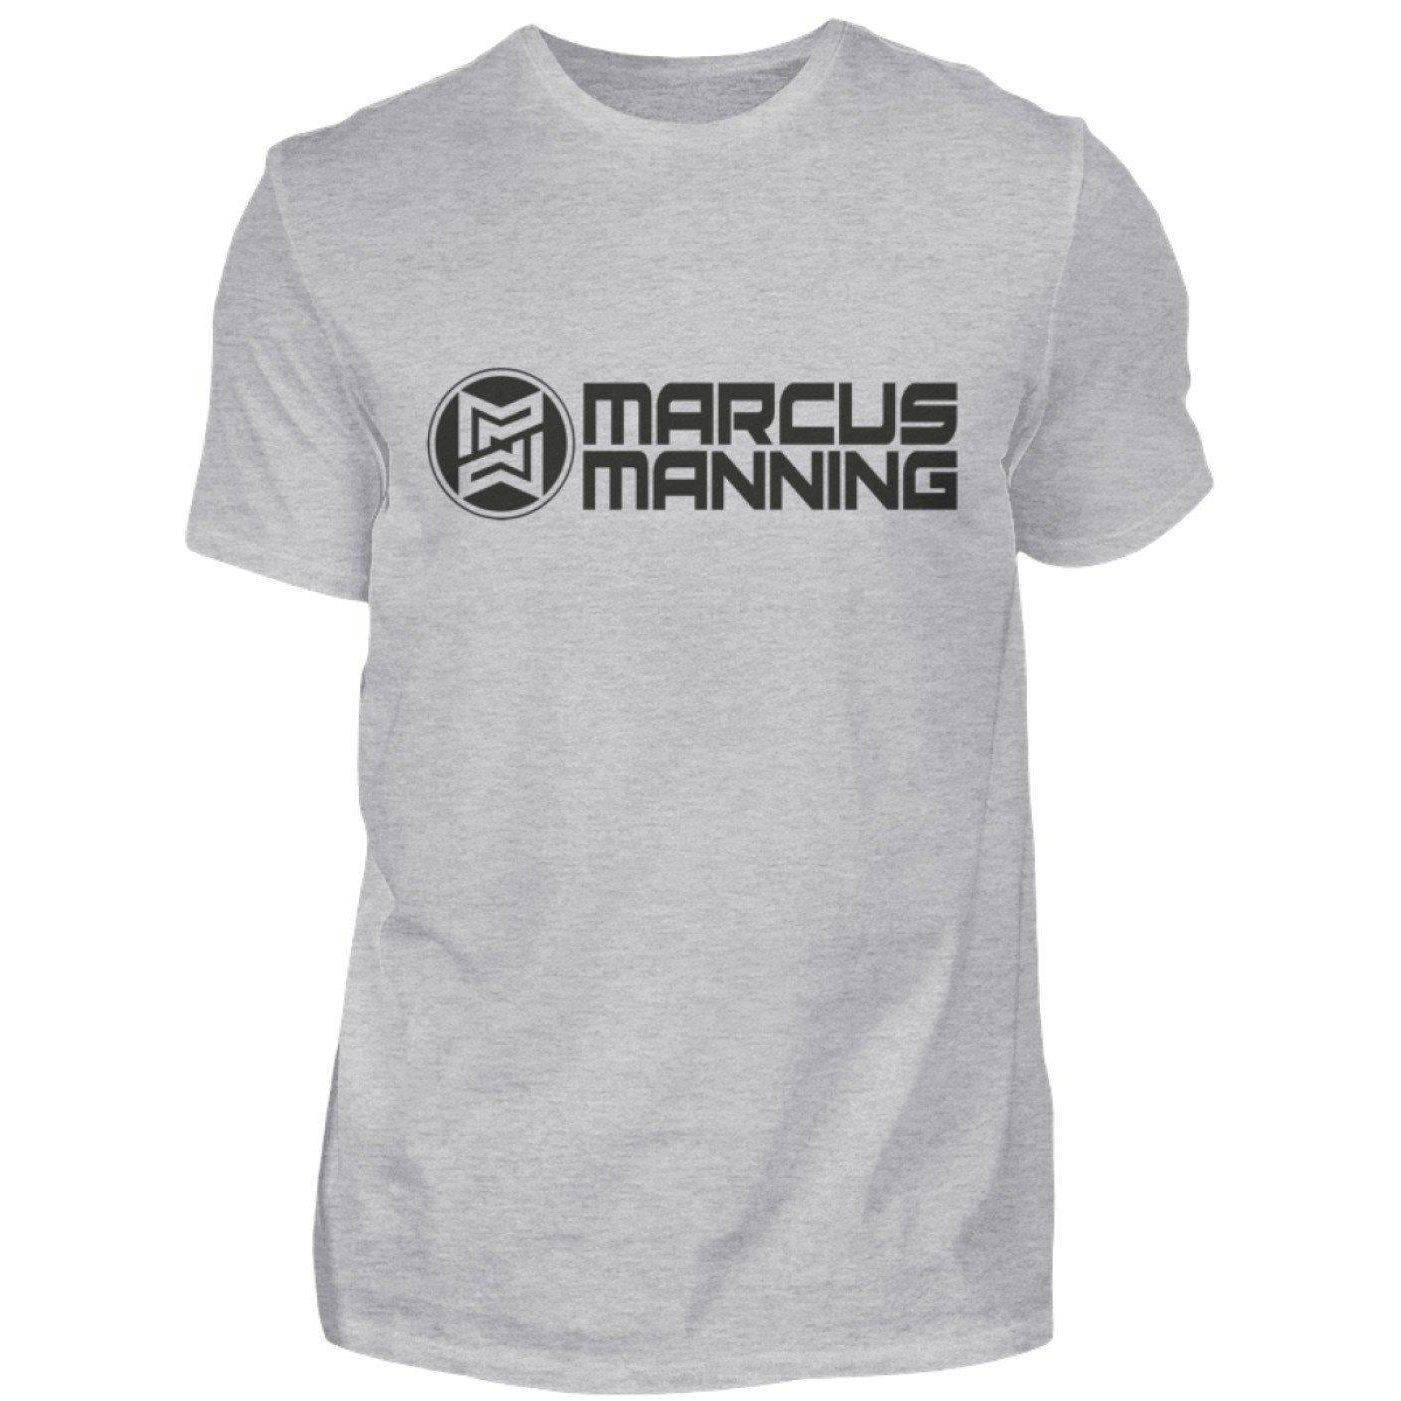 Marcus Manning Light Collection - Men's Shirt Men's Basic T-Shirt Gray (Mottled) / S - Rave On!® the club & techno scene shop for cool young fashion streetwear style & fashion outfits + sexy festival 420 stuff